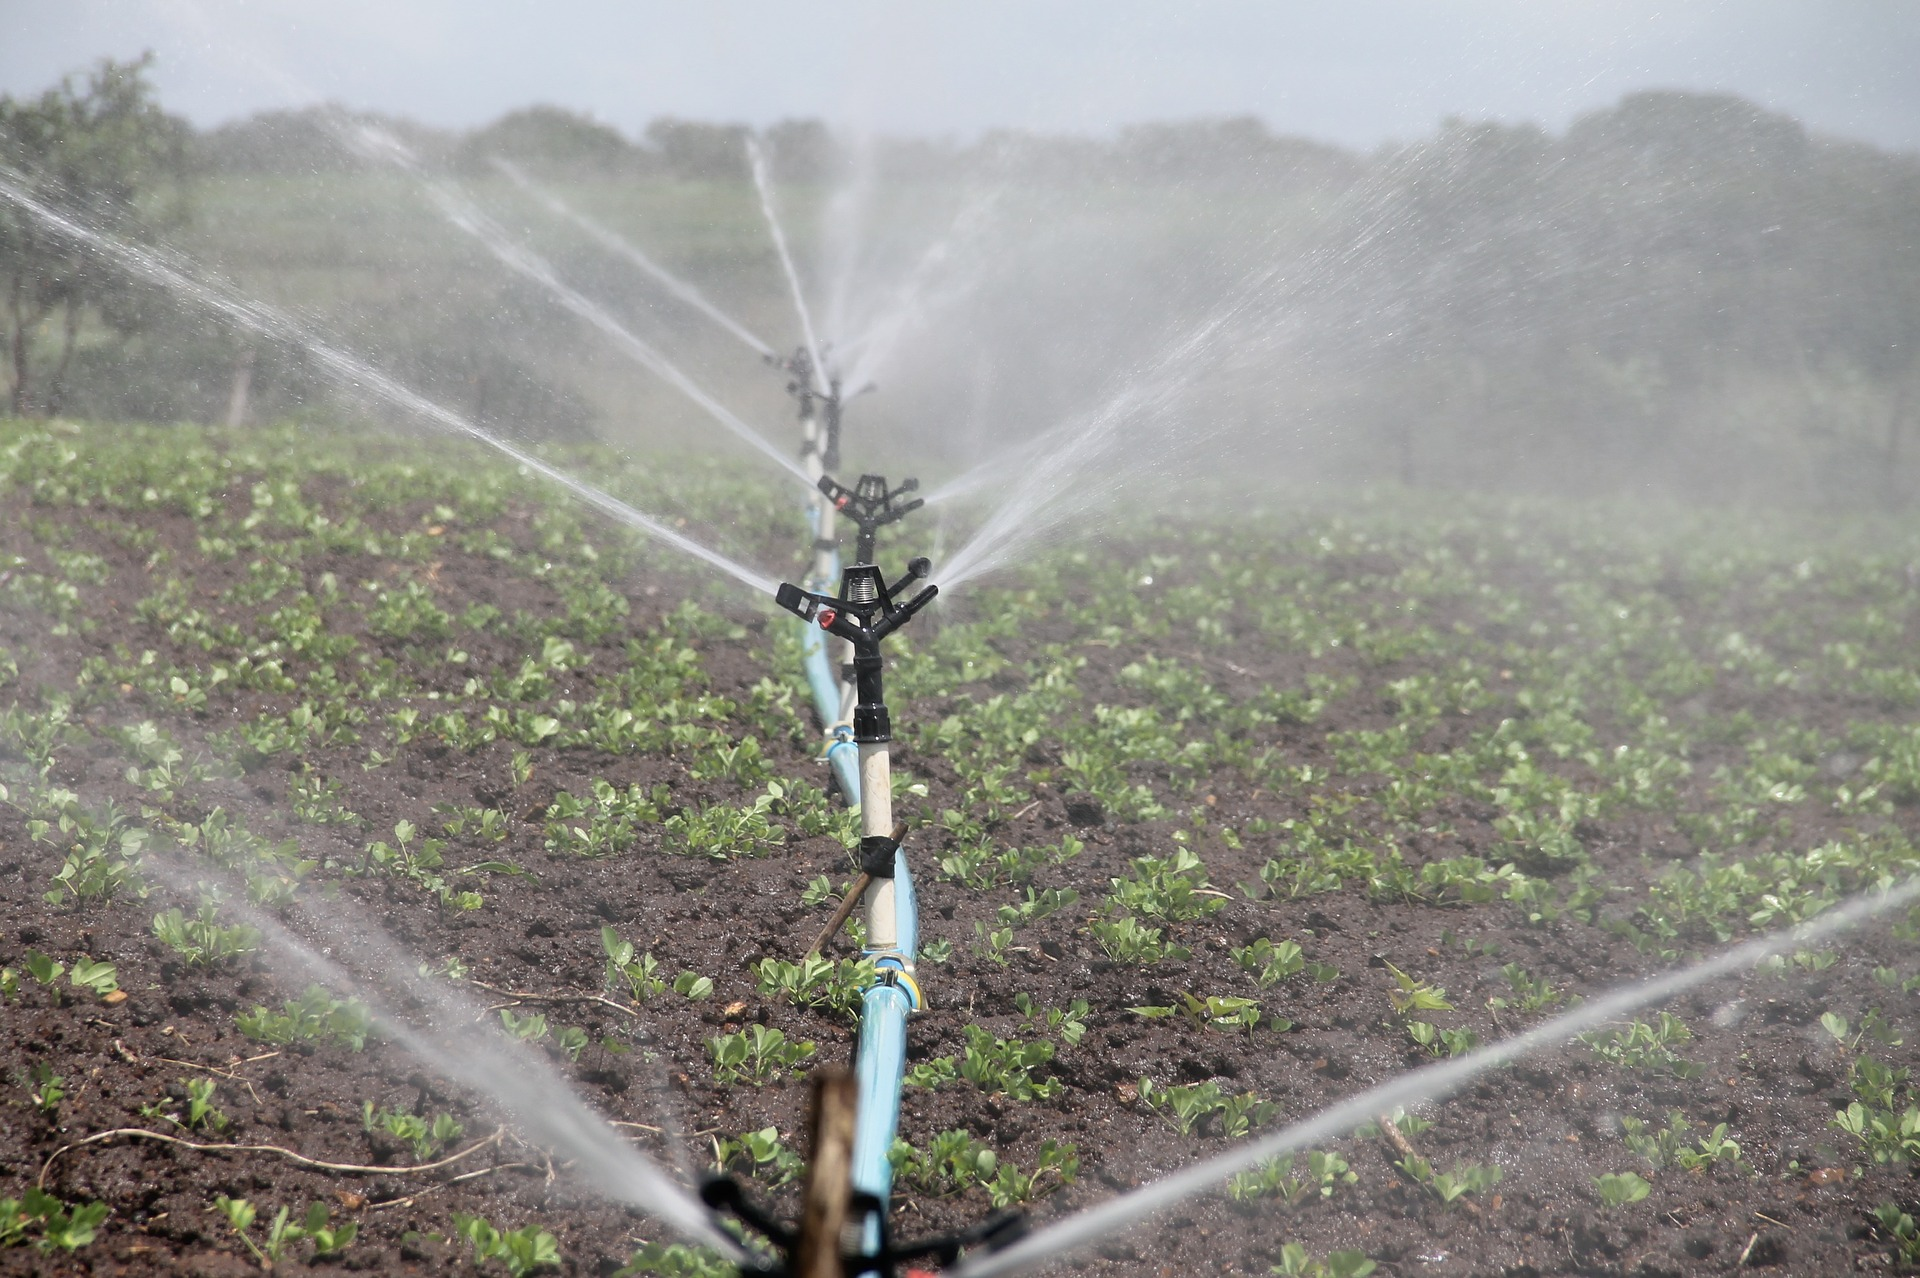 smartization of Irrigation